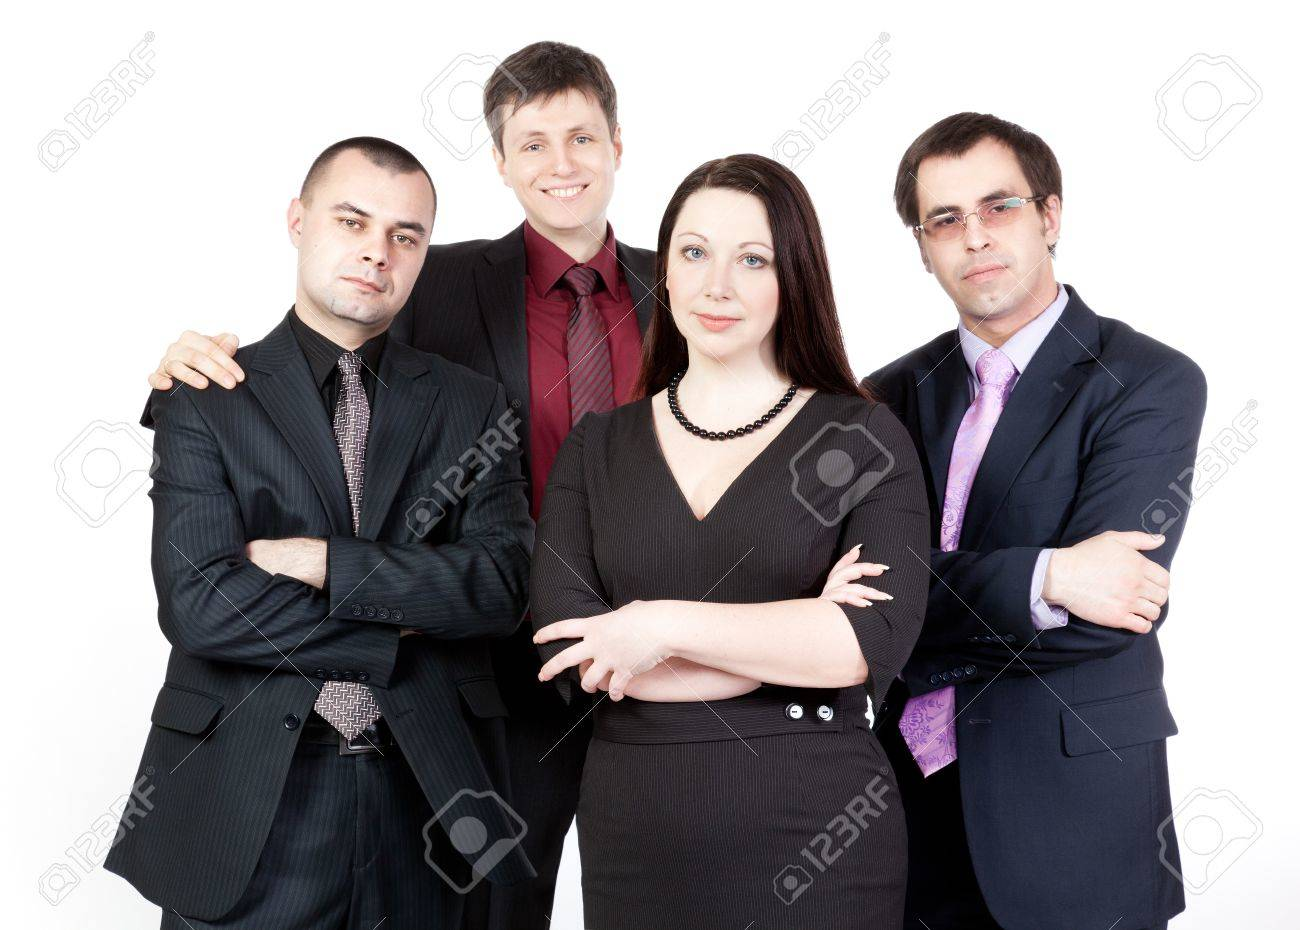 19381563-four-business-people-standing-s